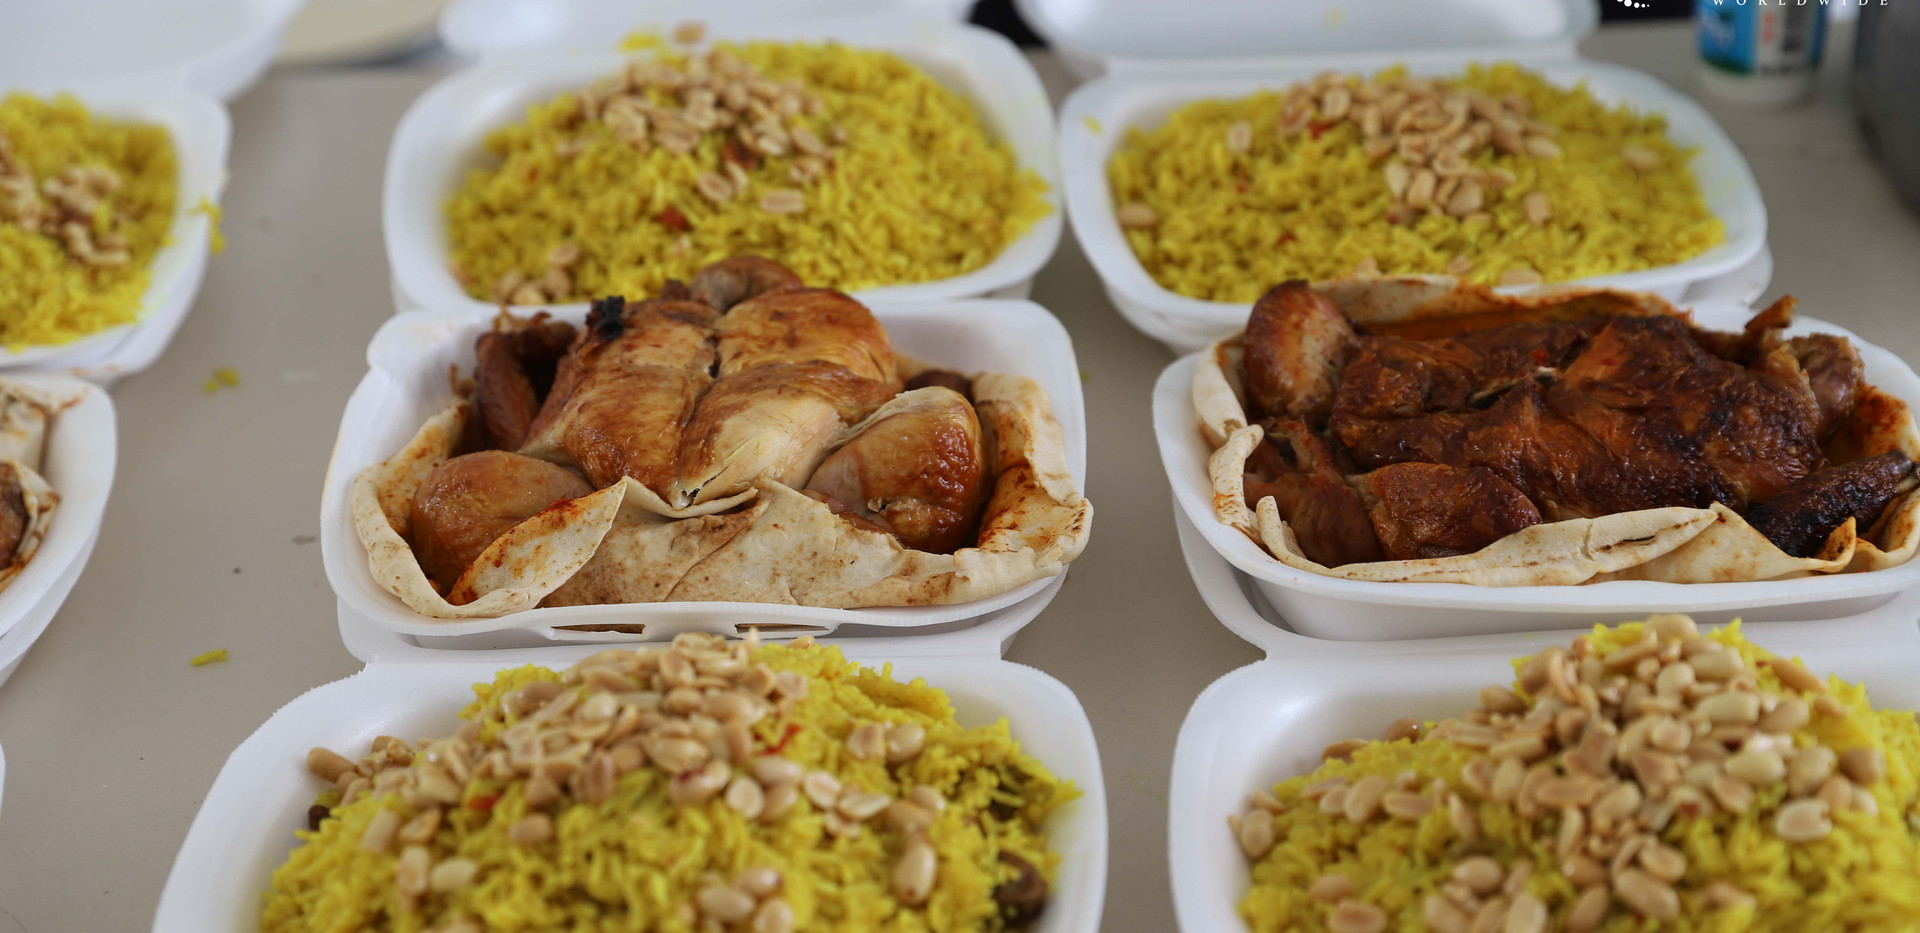 Meal Distribution for Syria Refugees